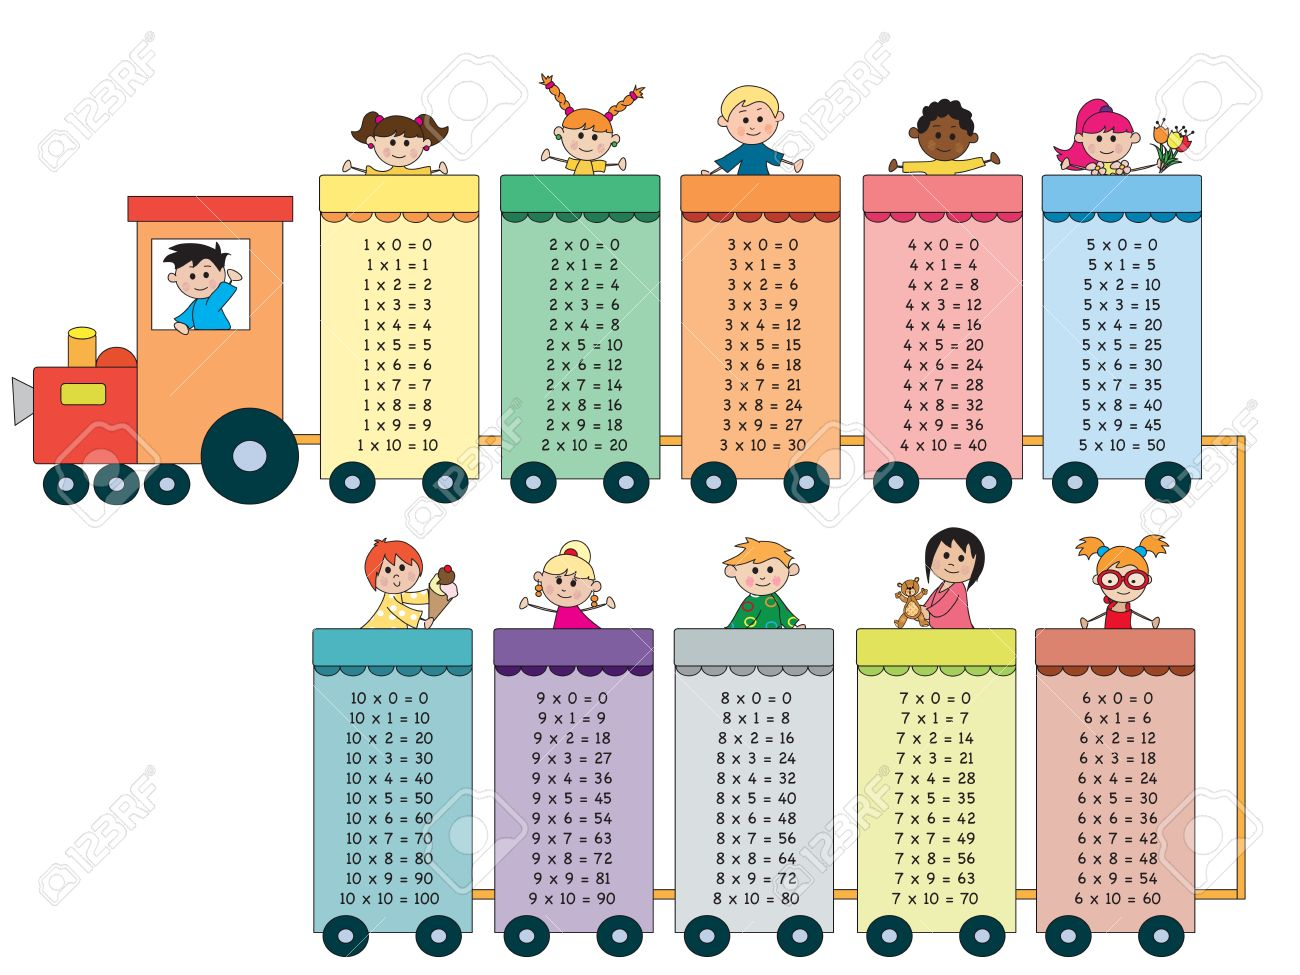 Multiplication Table | Multiplication Table Stock Photos Royalty Free Multiplication Table